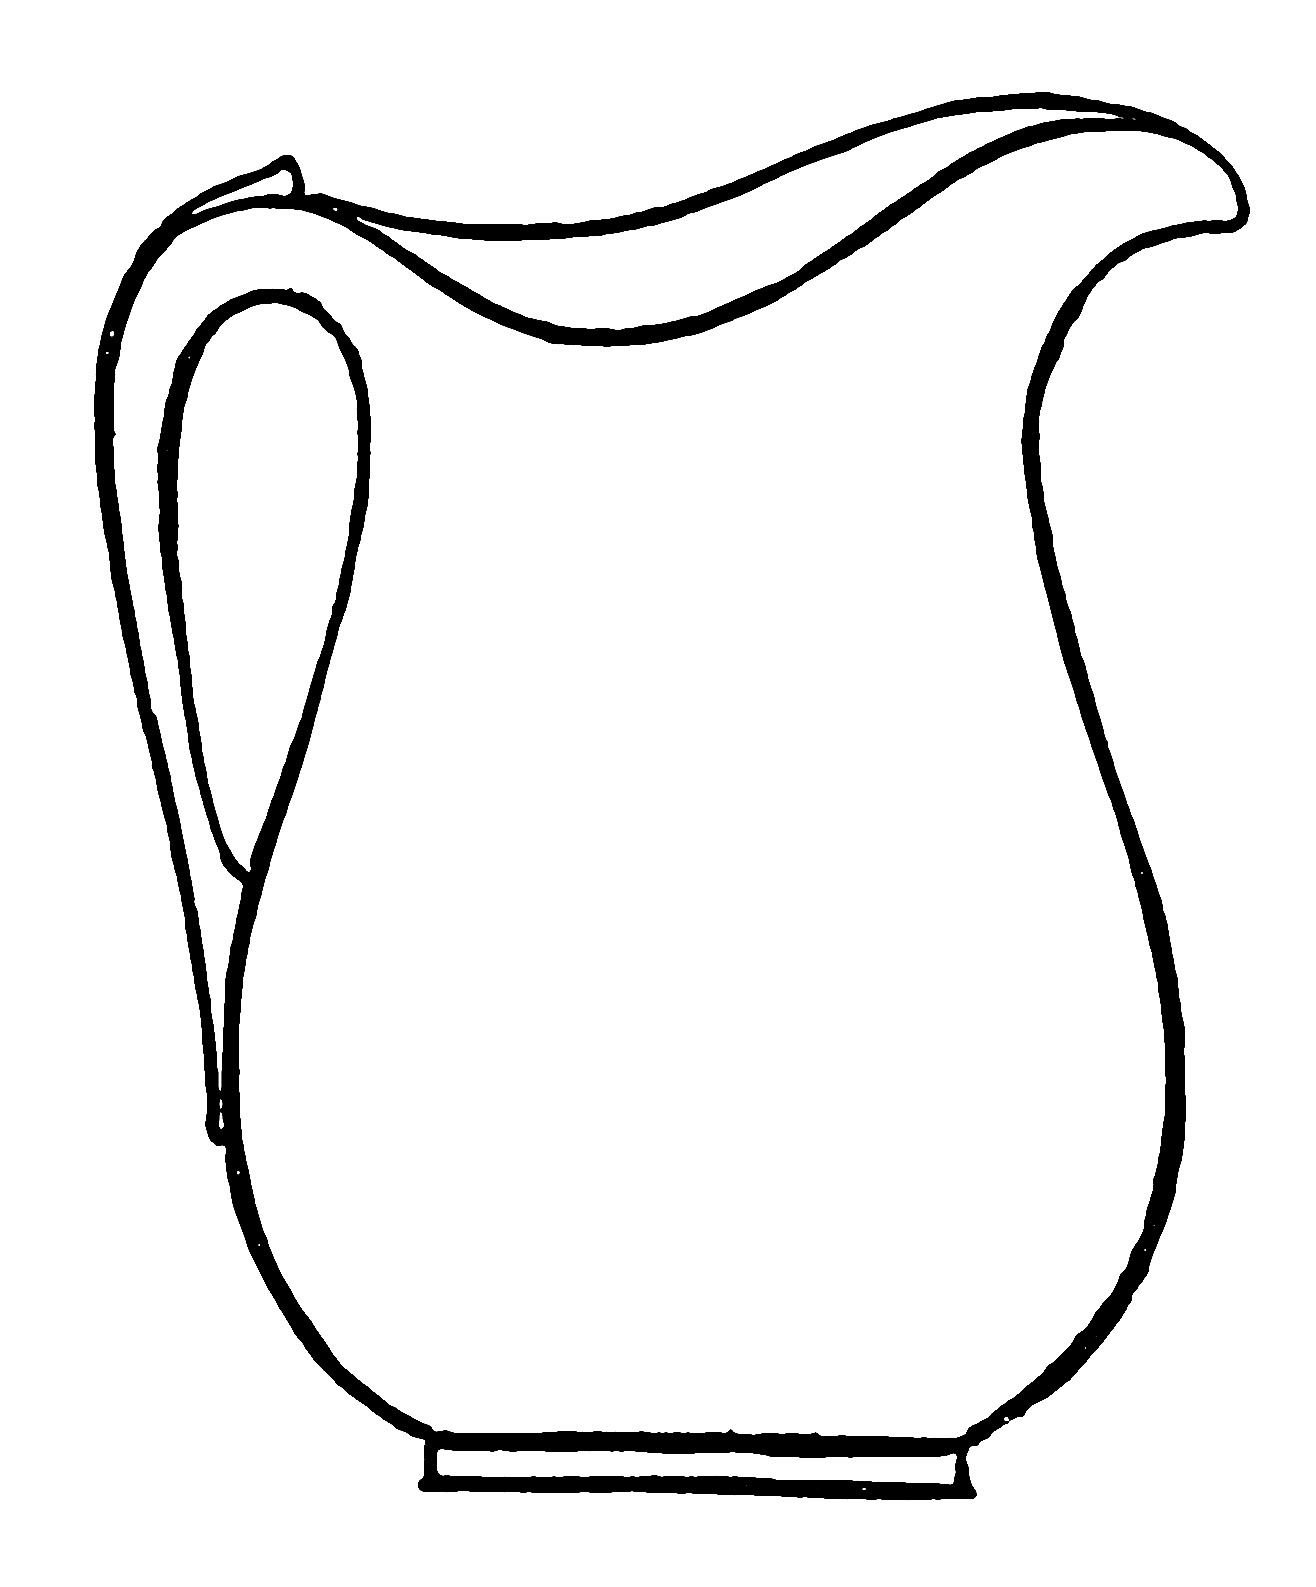 coloring pages pitcher of water - photo#21